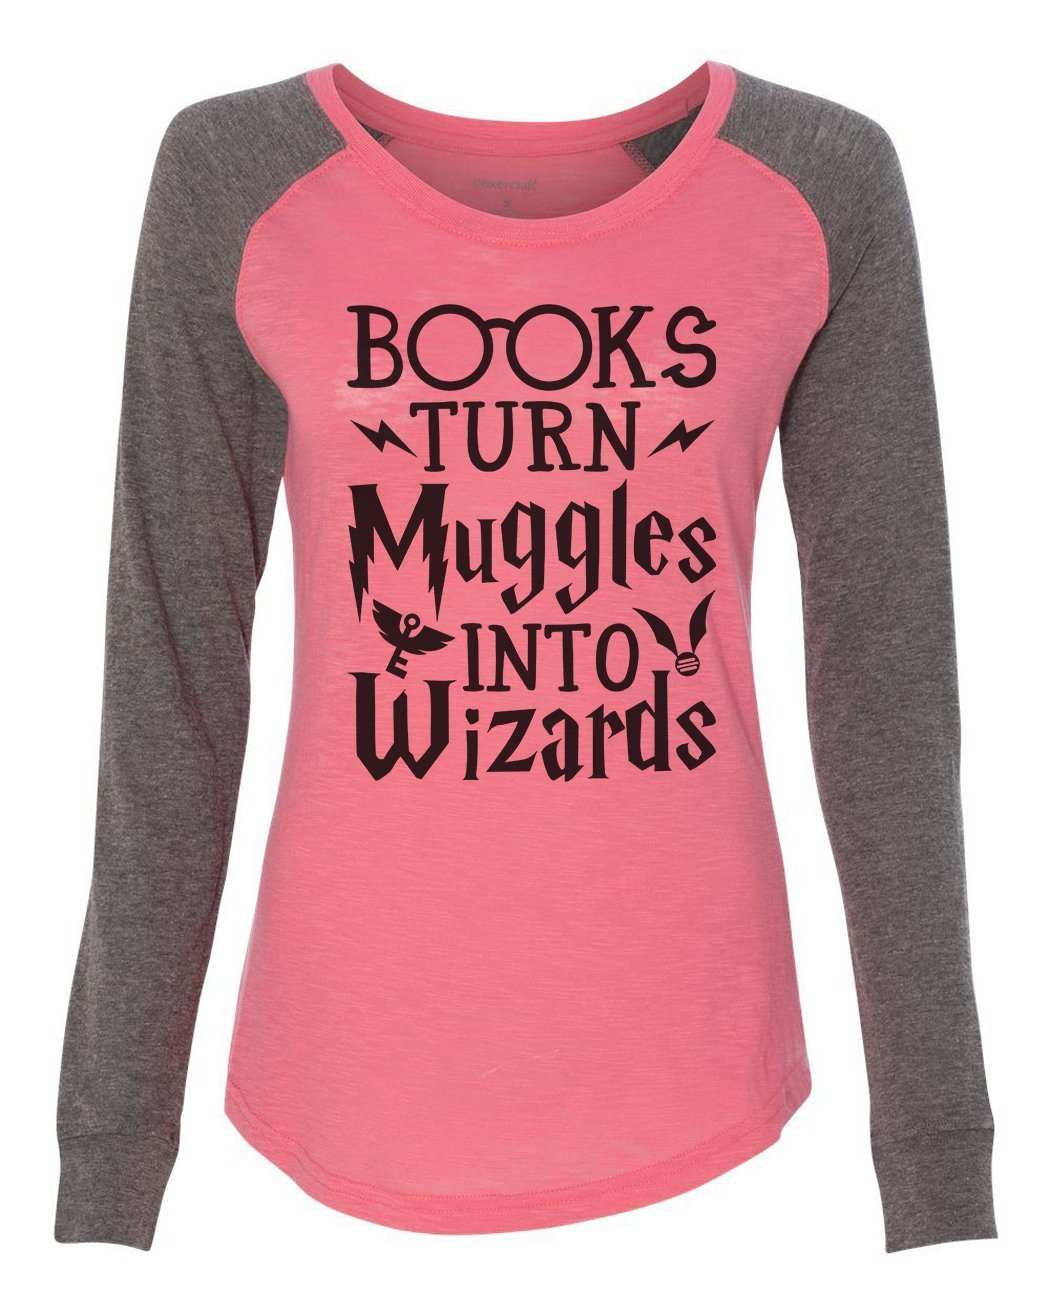 BOOKS TURN MUGGLES INTO WIZARDS HARRY POTTER  FUNNY XMAS BIRTHDAY KIDS HOODIE